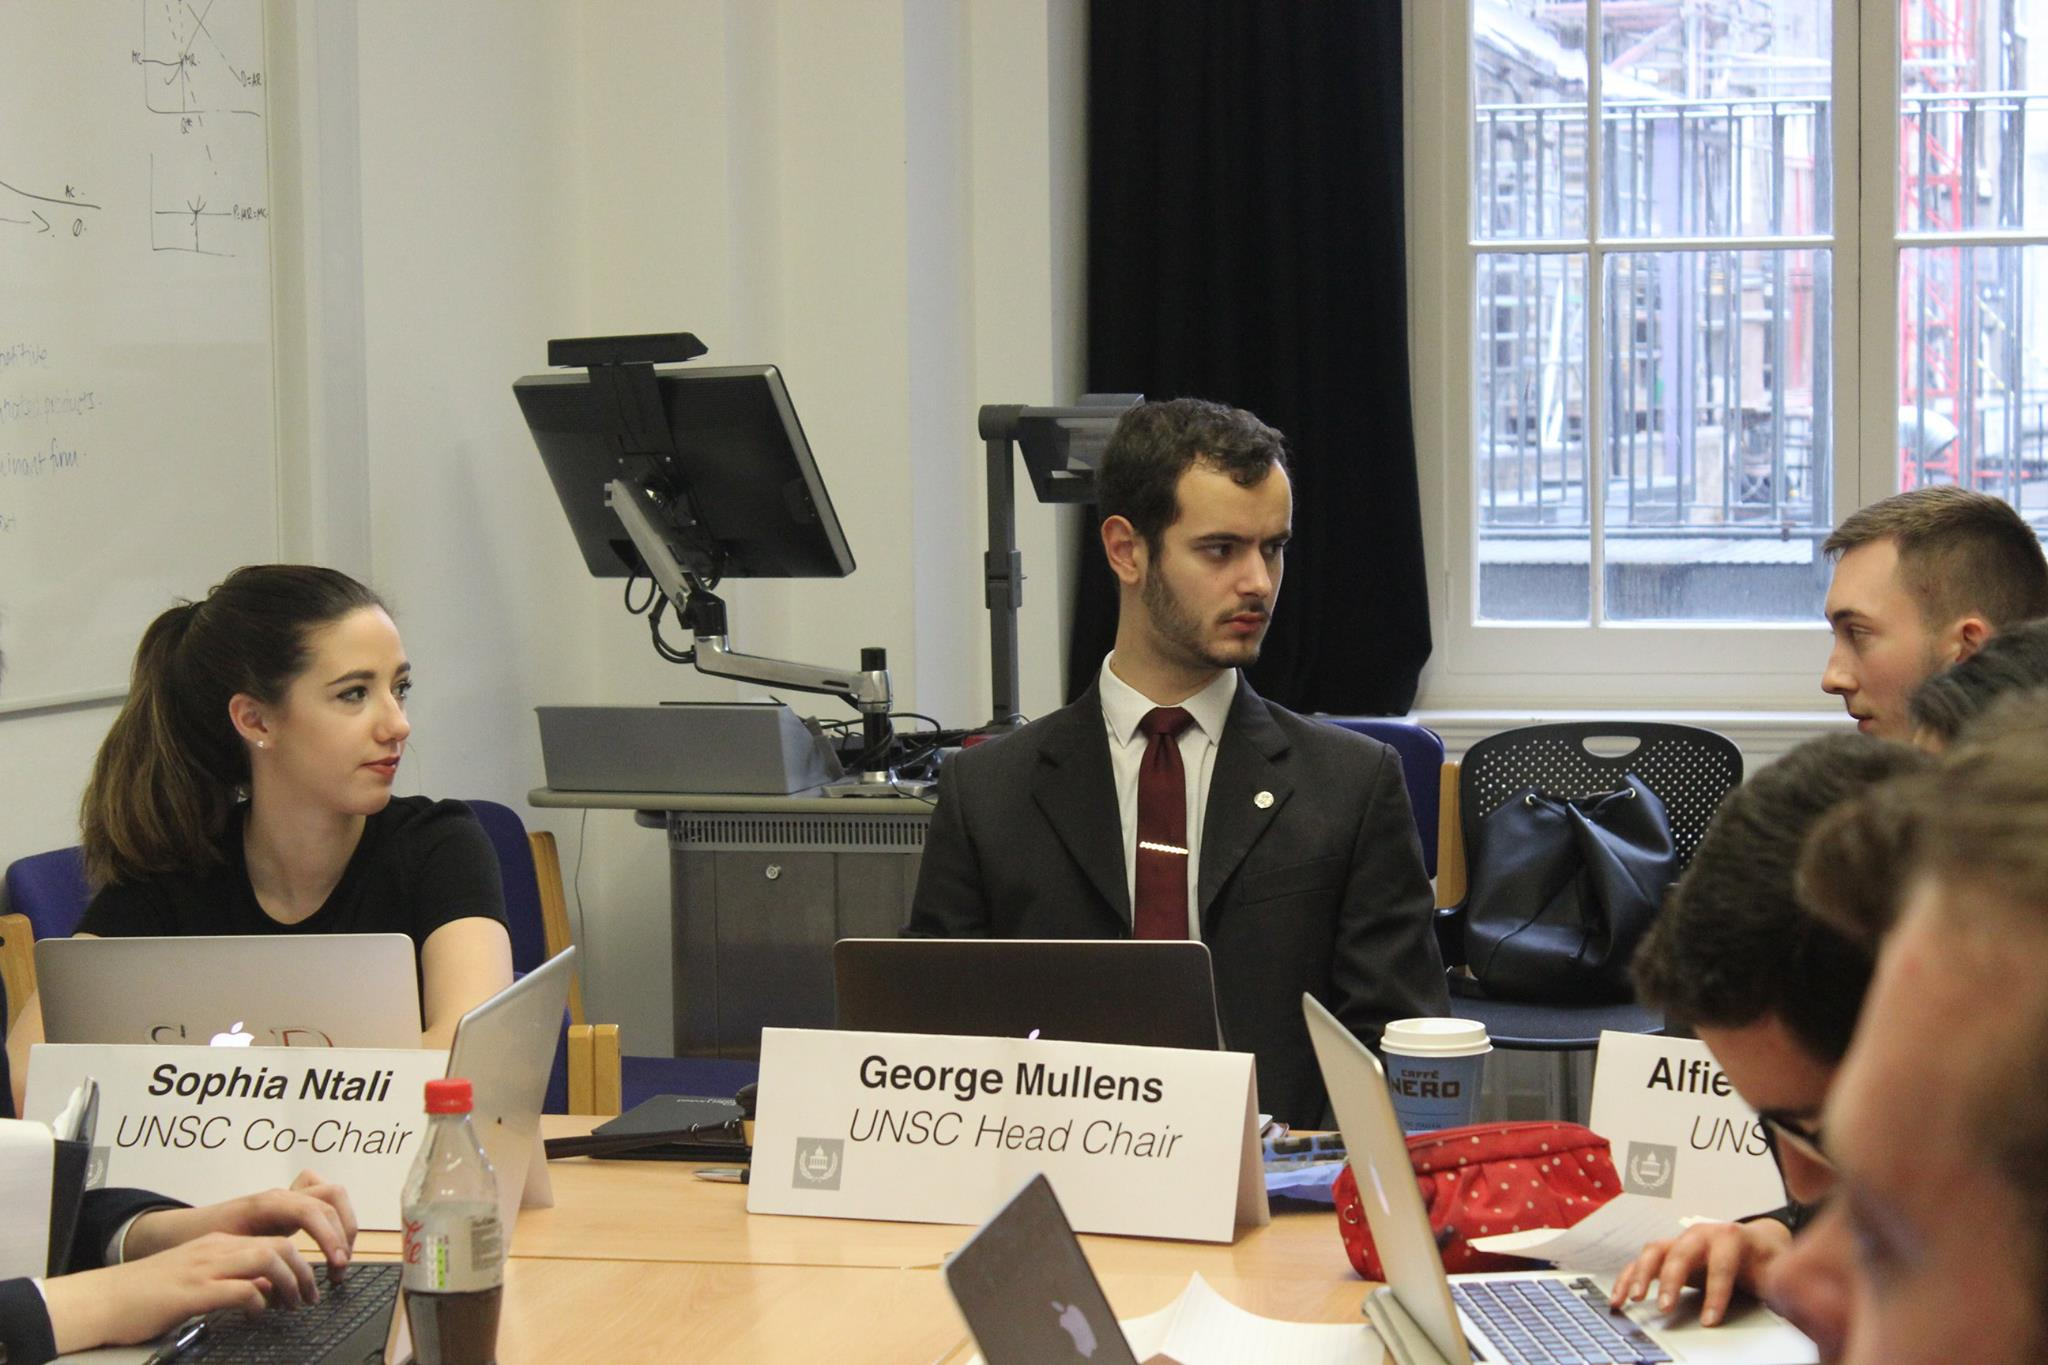 The United Nations Security Council at UCLMUN 2017